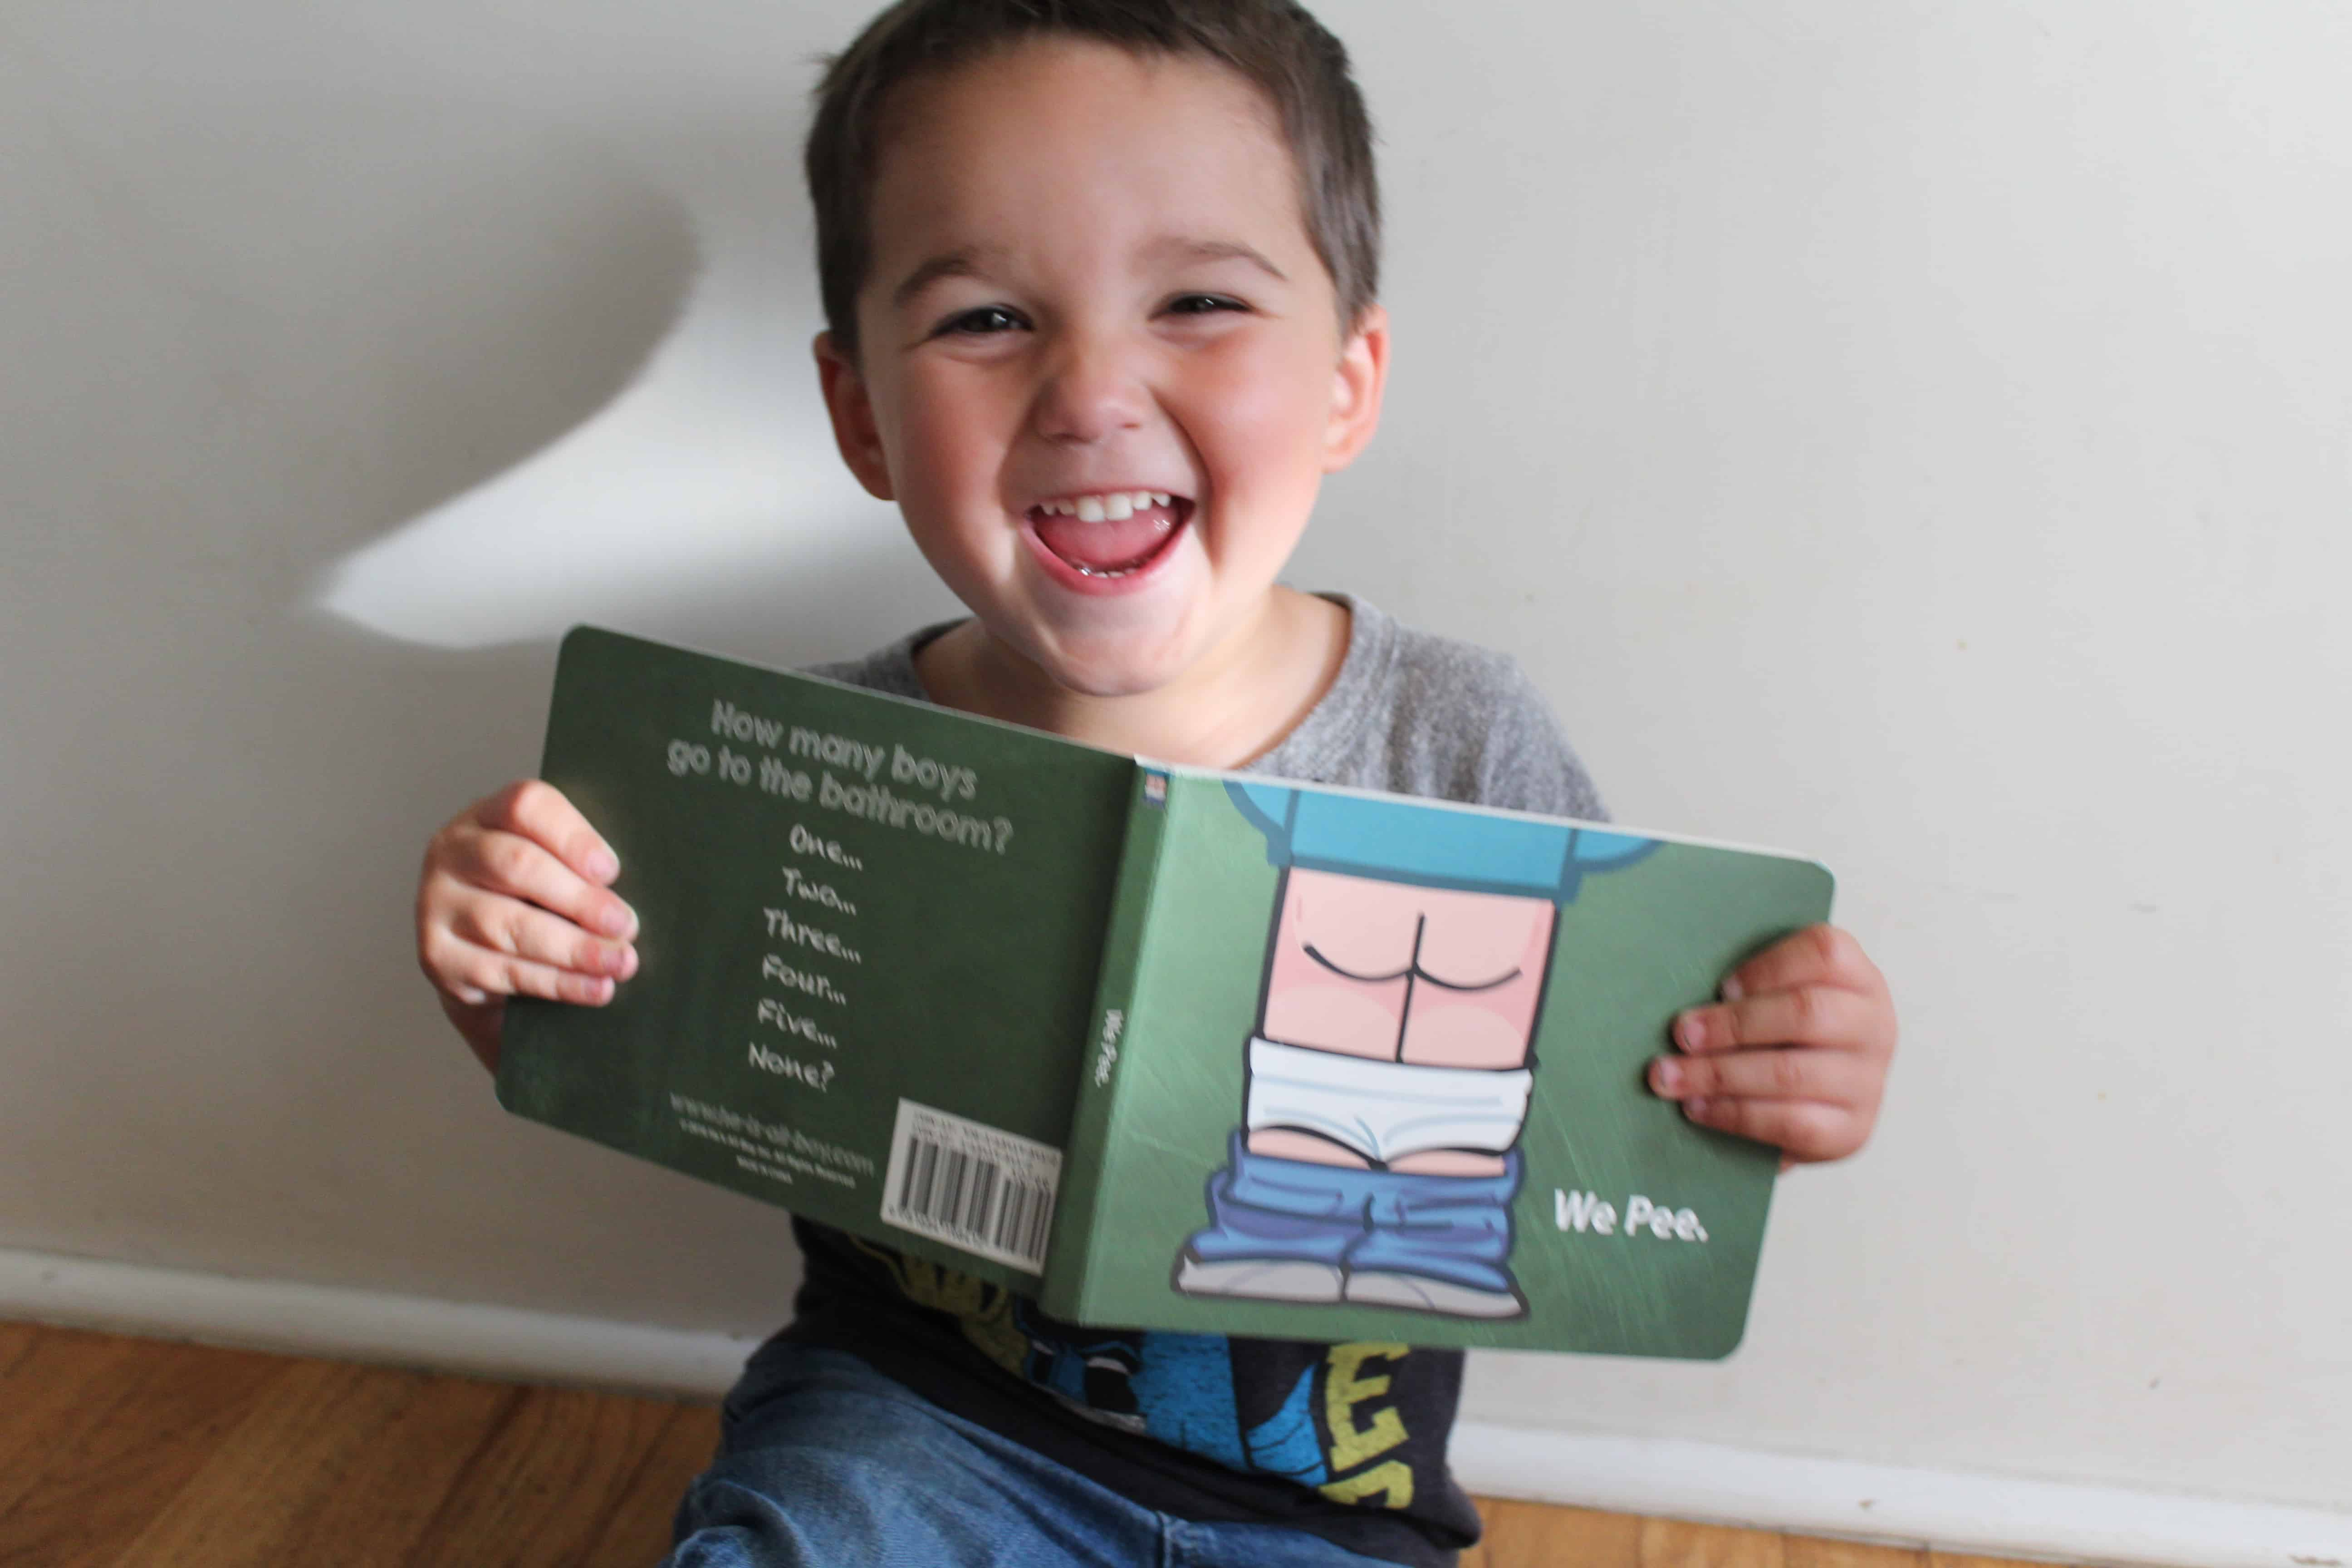 """Smiling toddler boy holding the book called """"We pee"""""""